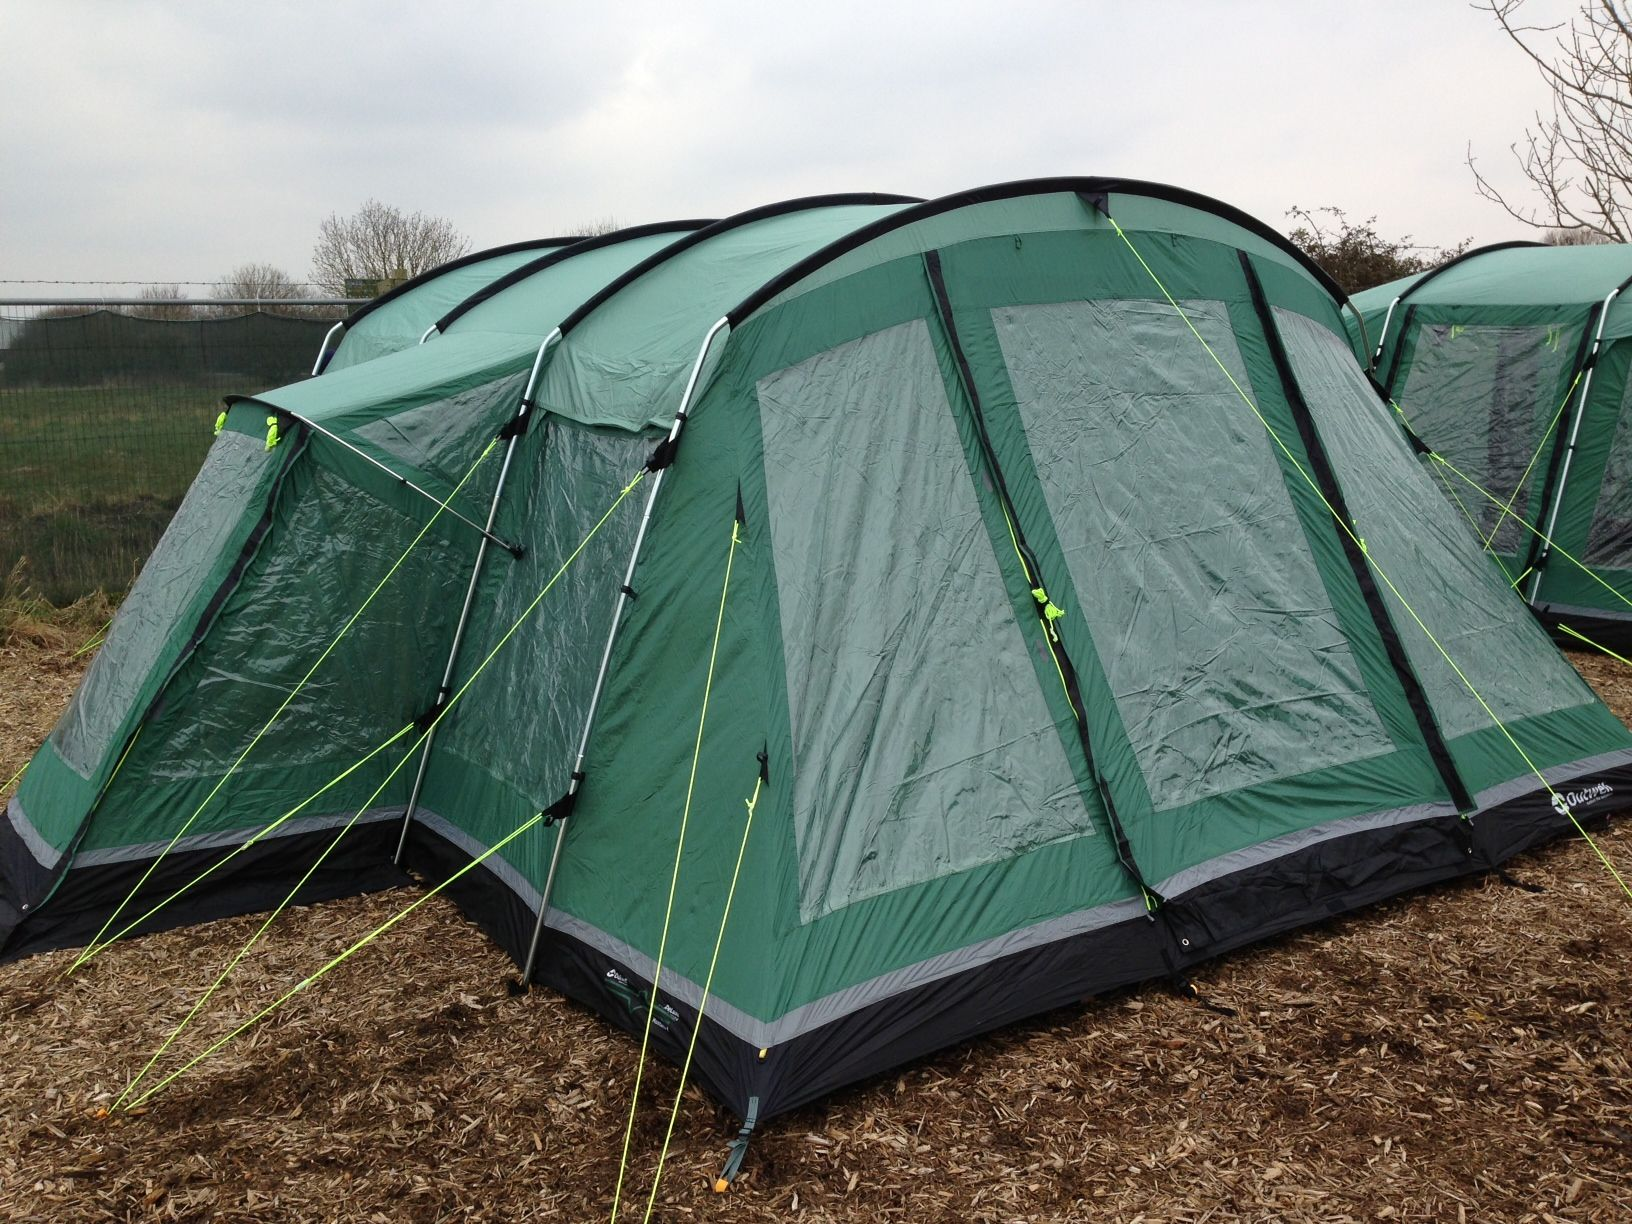 Outwell Montana 6 at Sanders tent display in new Foliage Green colourway! & Outwell Montana 6 at Sanders tent display in new Foliage Green ...